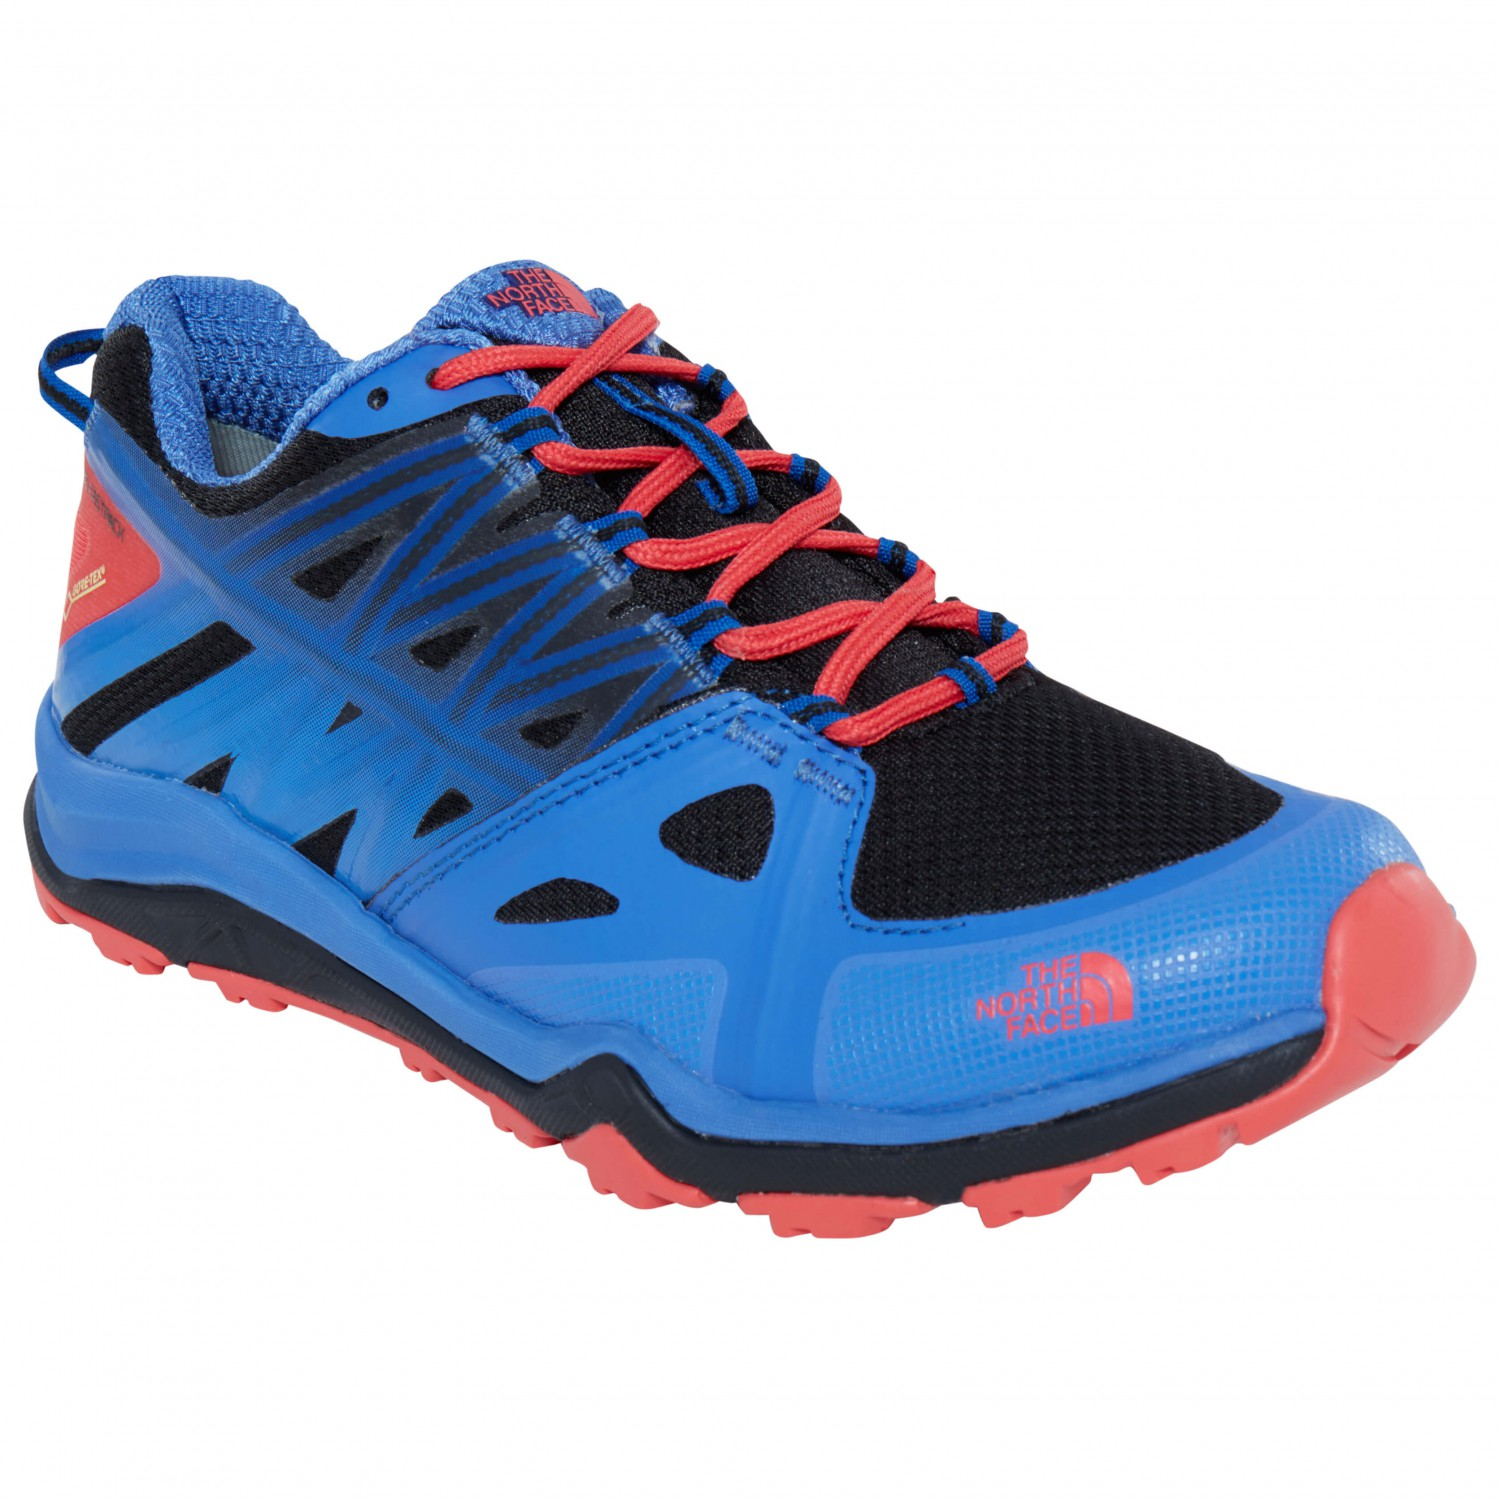 b05bbe199 The North Face Hedgehog Fastpack Lite II GTX - Multisport Shoes ...